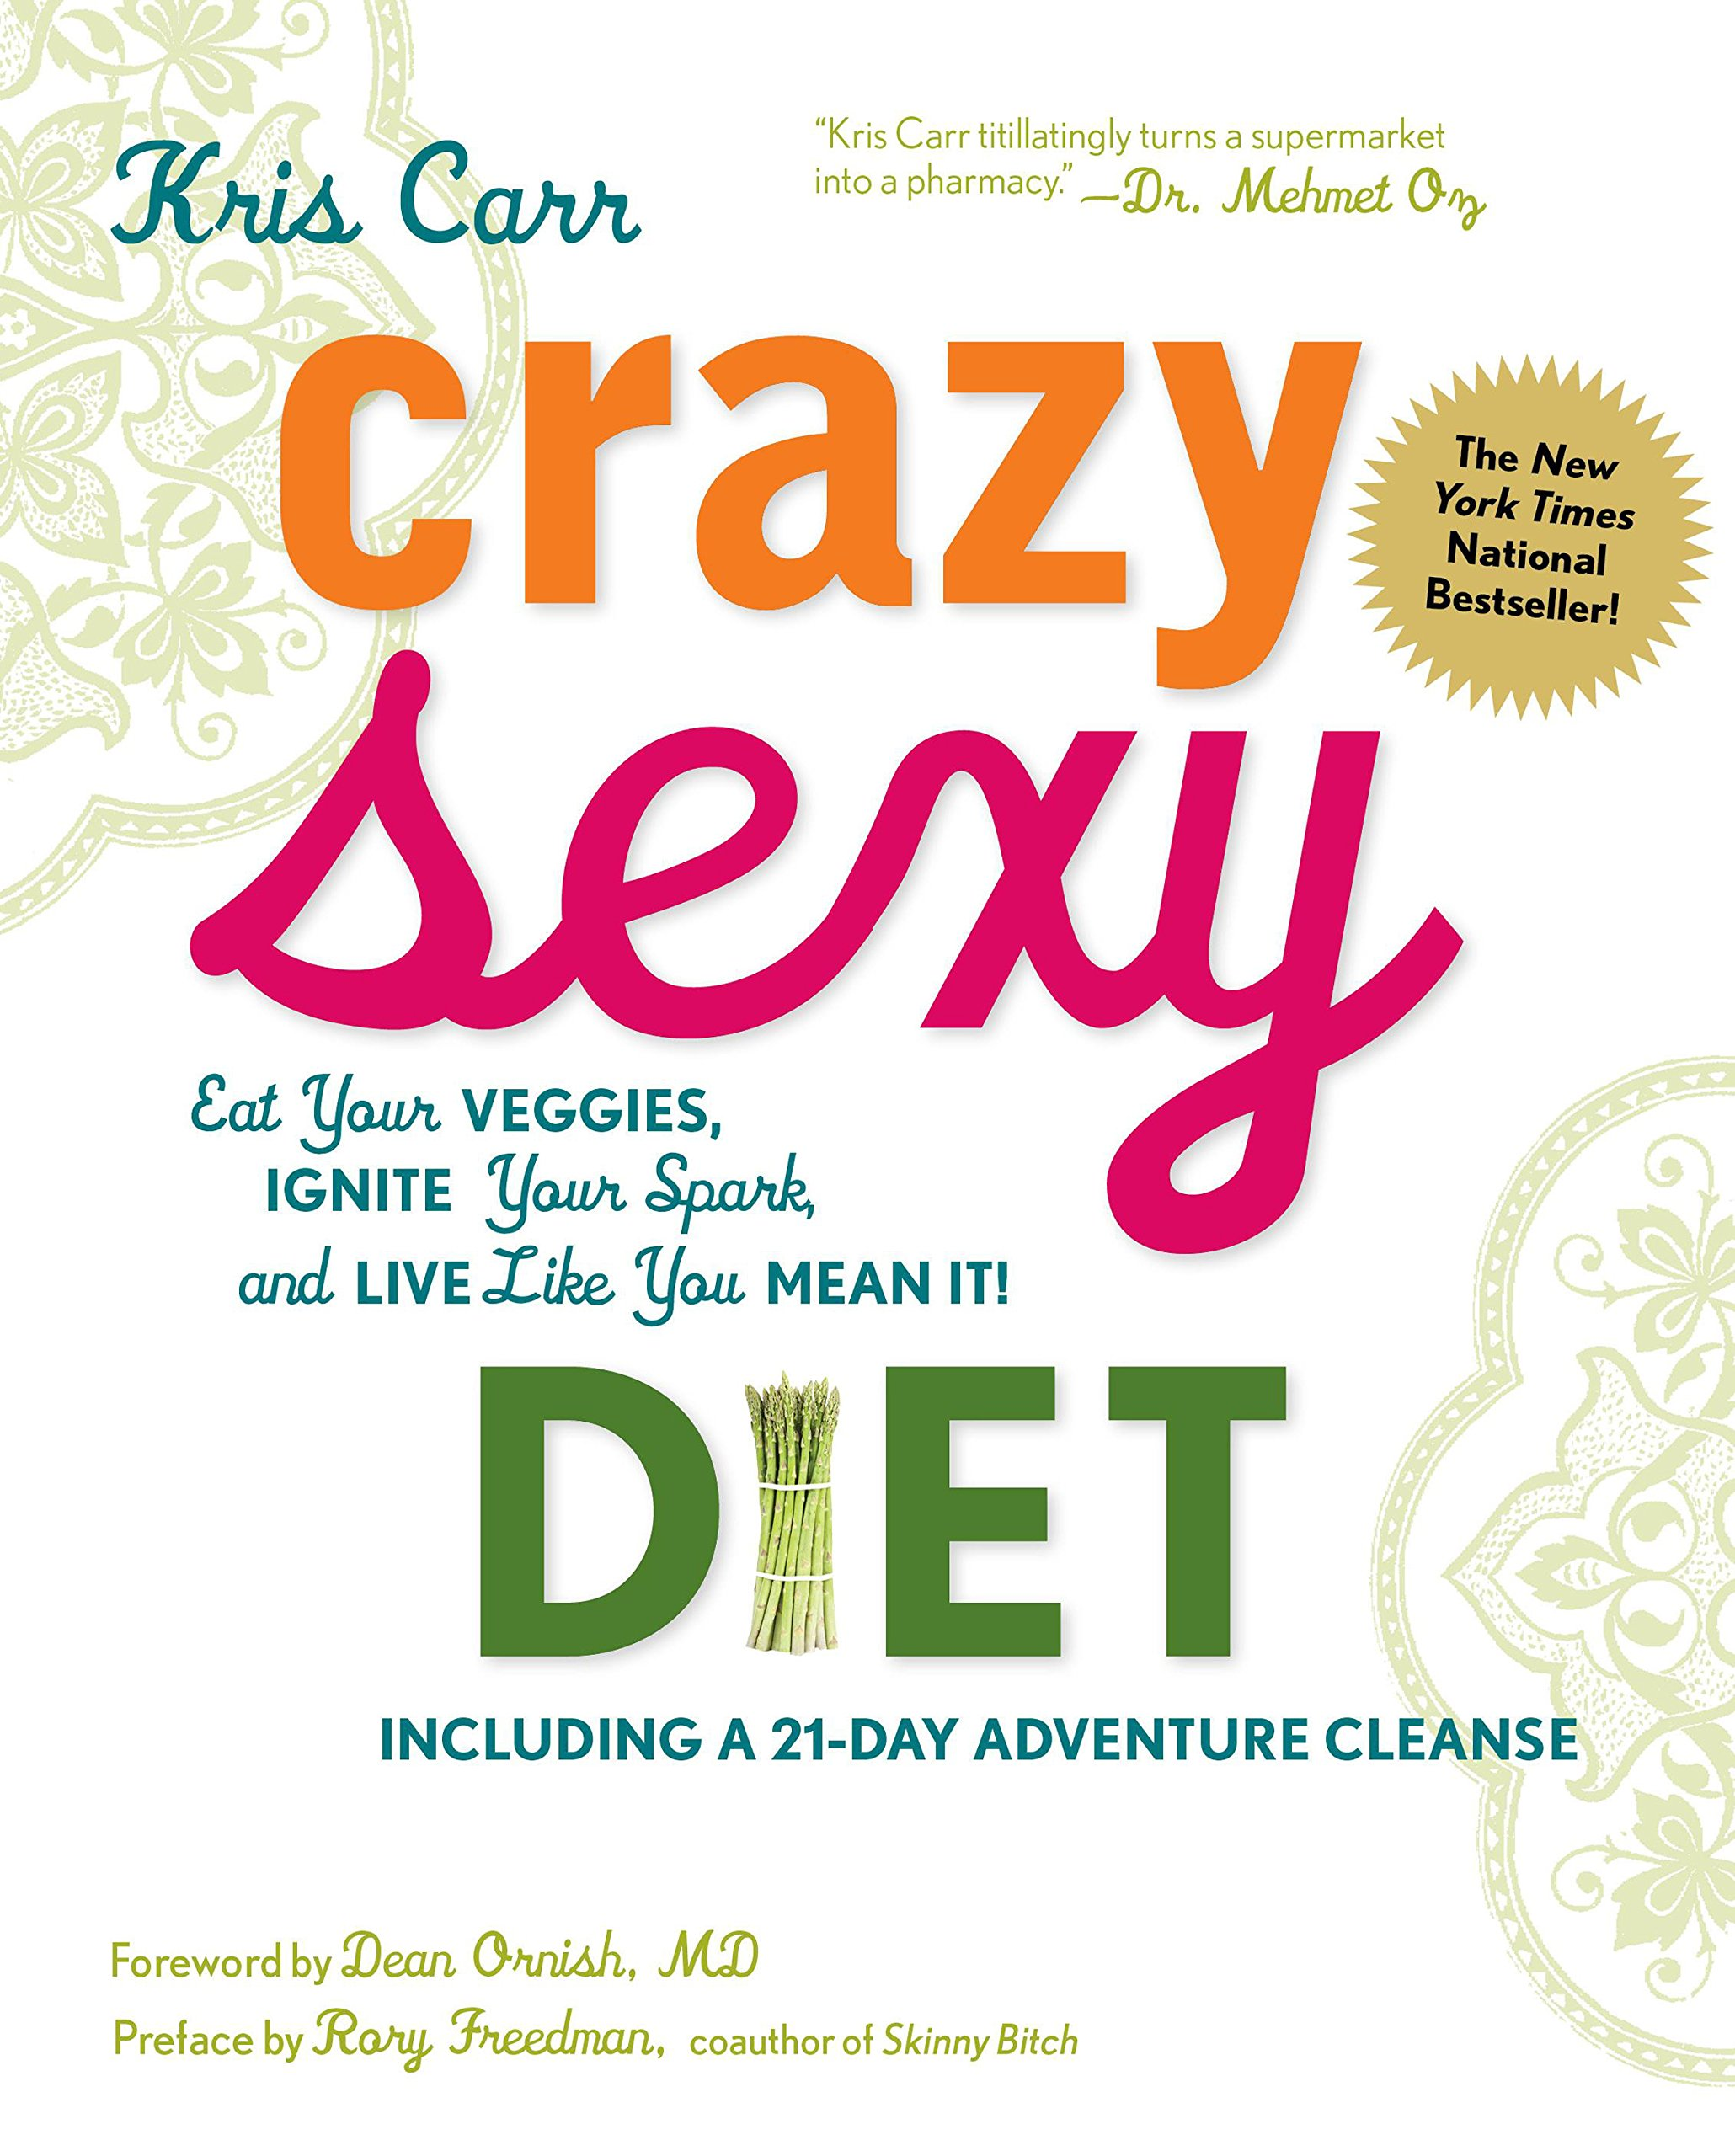 crazy sexy diet: eat your veggies, ignite your spark, and live like you mean it! - By Kris CarrThe New York Times bestseller, now in paperback! Kris Carr, author of the best-selling Crazy Sexy Cancer Tips and Crazy Sexy Cancer Survivor, takes on the crazy sexy subject of what and how we eat, drink, and think.Infused with Carr's signature sass, wit and advice-from-the-trenches style, Crazy Sexy Diet is a beautifully illustrated resource that puts you on the fast track to vibrant health, happiness and a great ass! Along with help from her posse of experts, she lays out the fundamentals of her Crazy Sexy Diet: an anti-inflammatory, vegetarian program that emphasizes balancing the pH of the body with lush whole and raw foods, nourishing organic green drinks, and scrumptious smoothies. Plus, she shares the steps of her own twenty-one-day cleanse, and simple but delectable sample recipes. Carr empowers readers to move from a state of constant bodily damage control to one of renewal and repair, making this a must-have for anyone who seeks to be a confident and sexy wellness warrior.